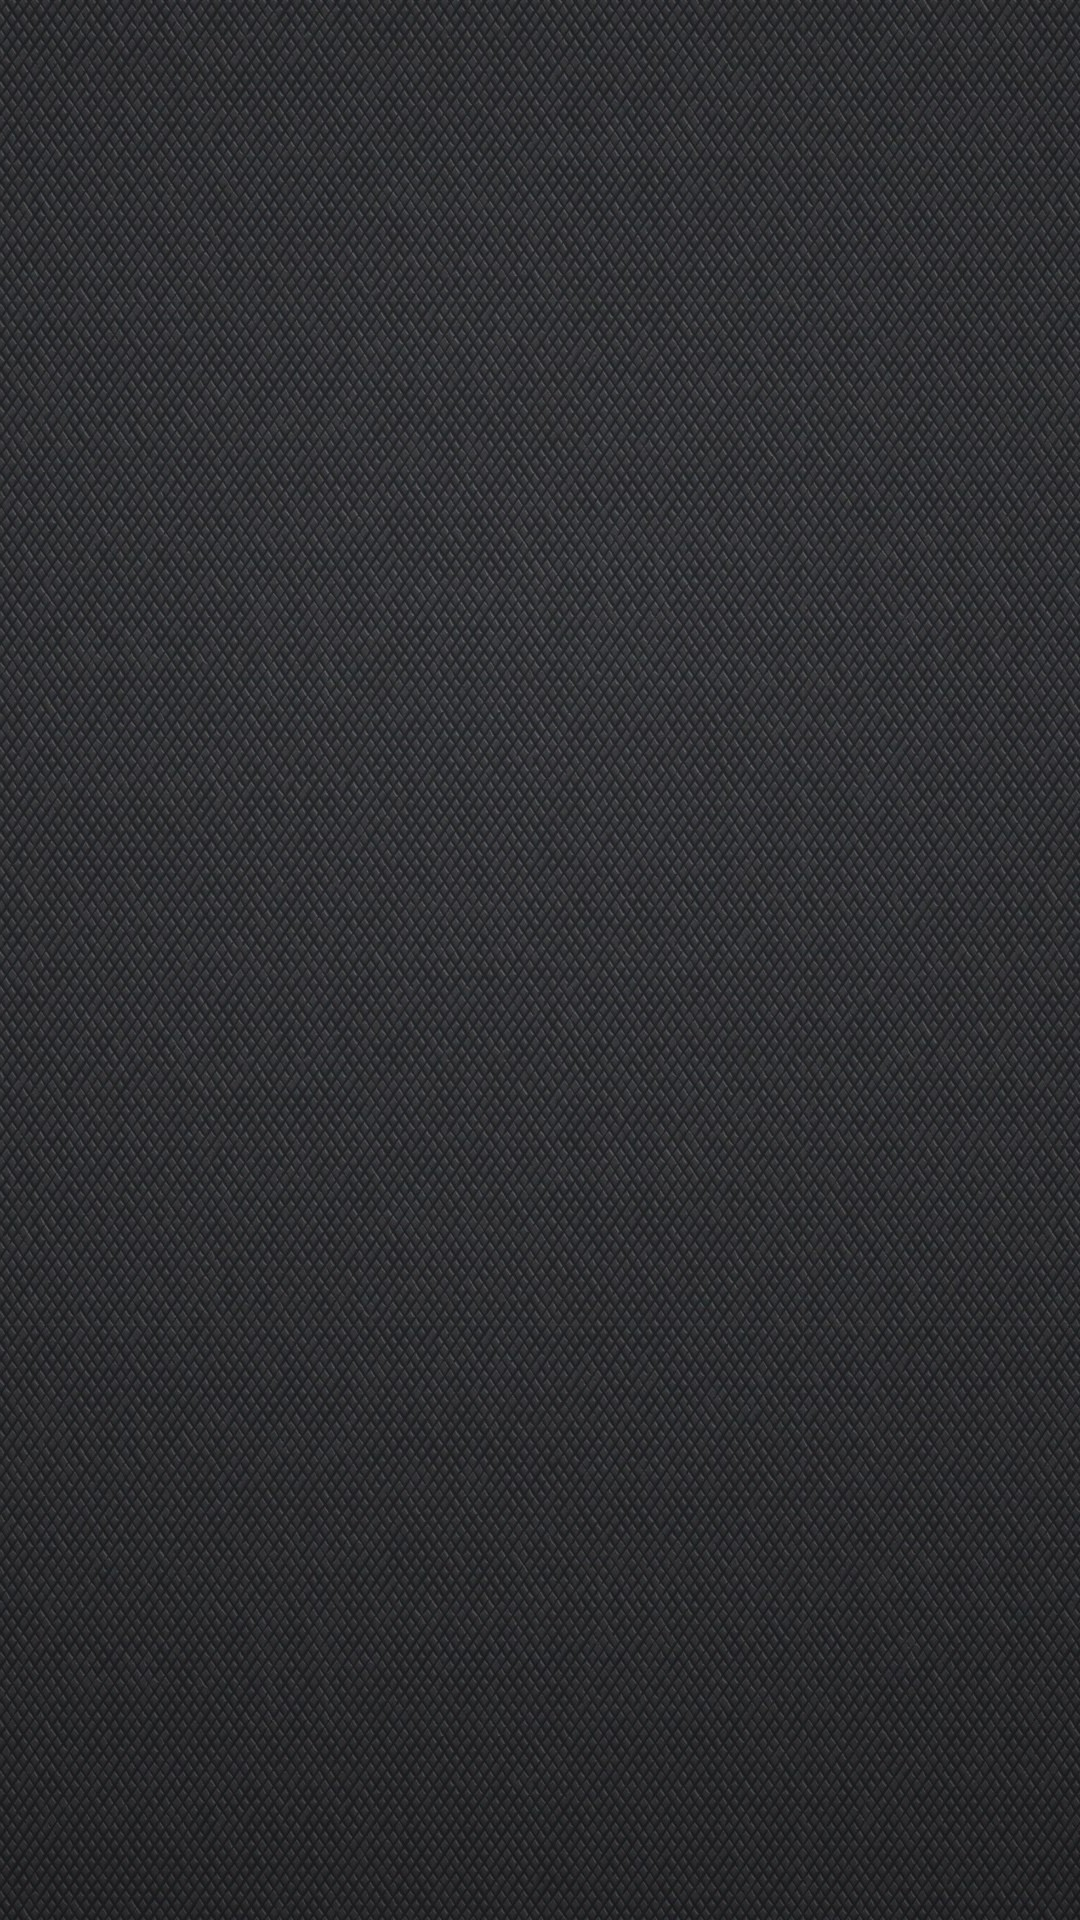 Grey Wallpaper Iphone Posted By Ethan Mercado